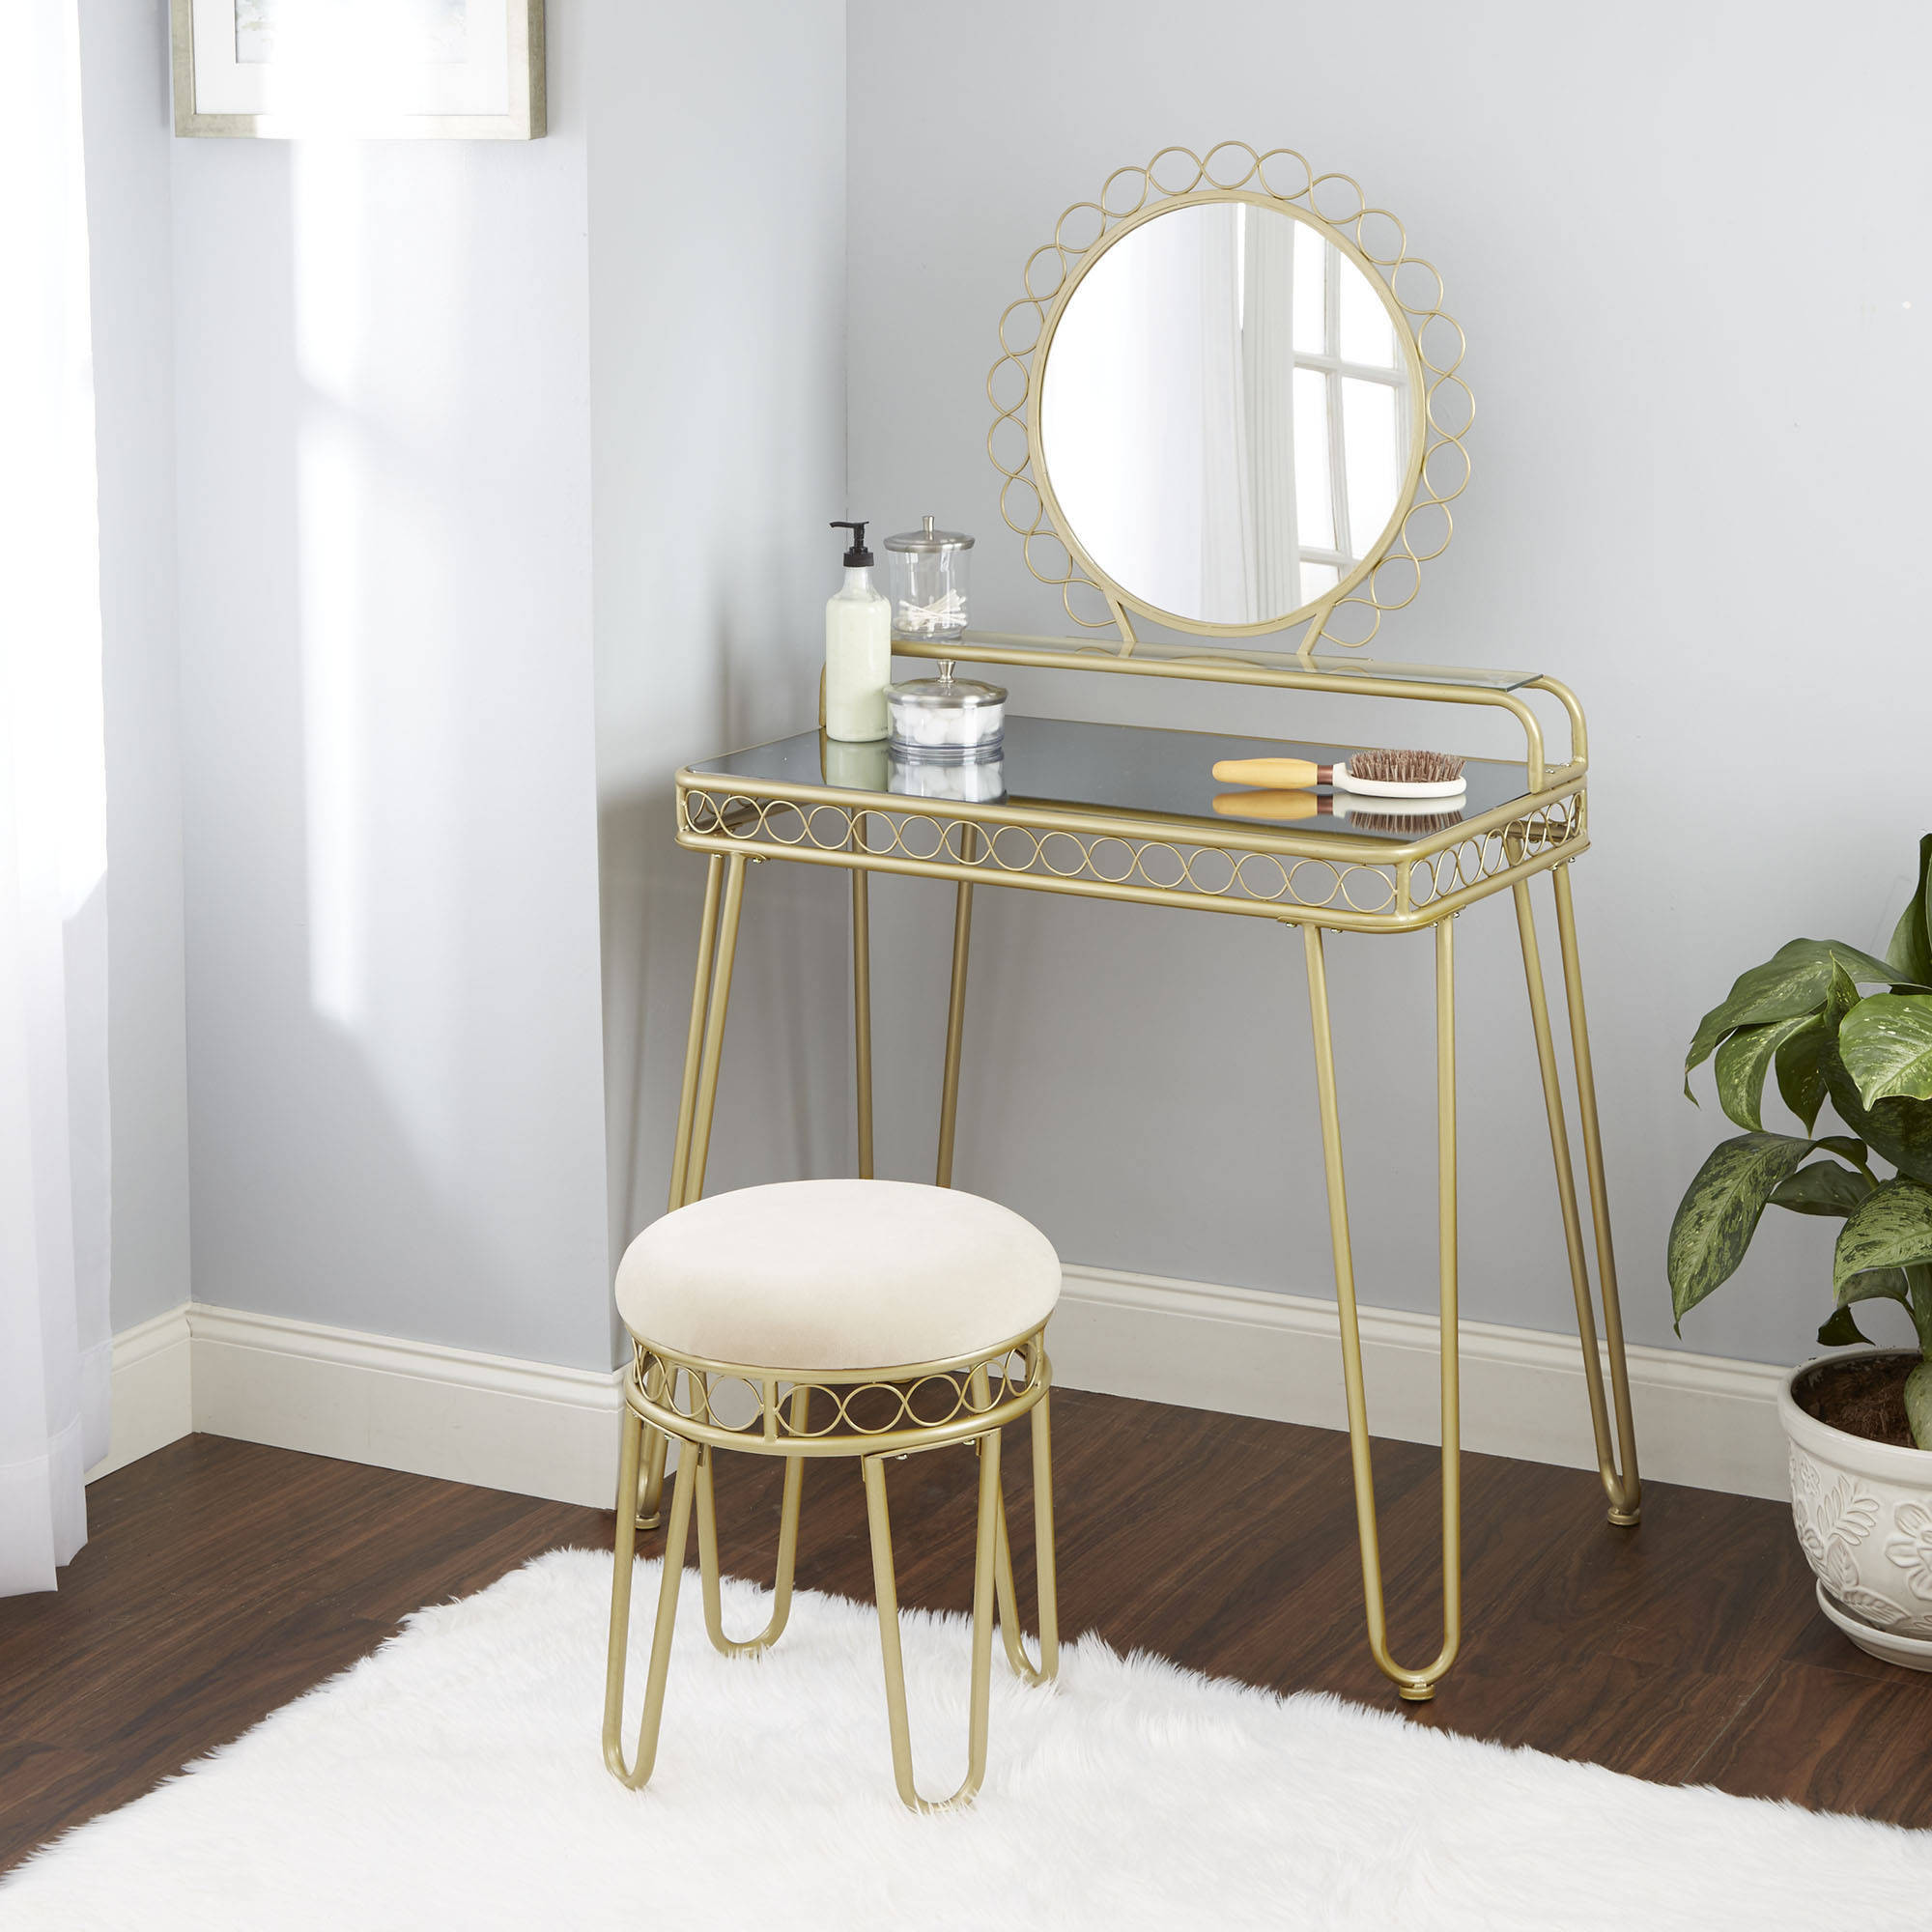 Better Homes and Gardens Mirabella Bedroom Vanity & Stool - Walmart.com